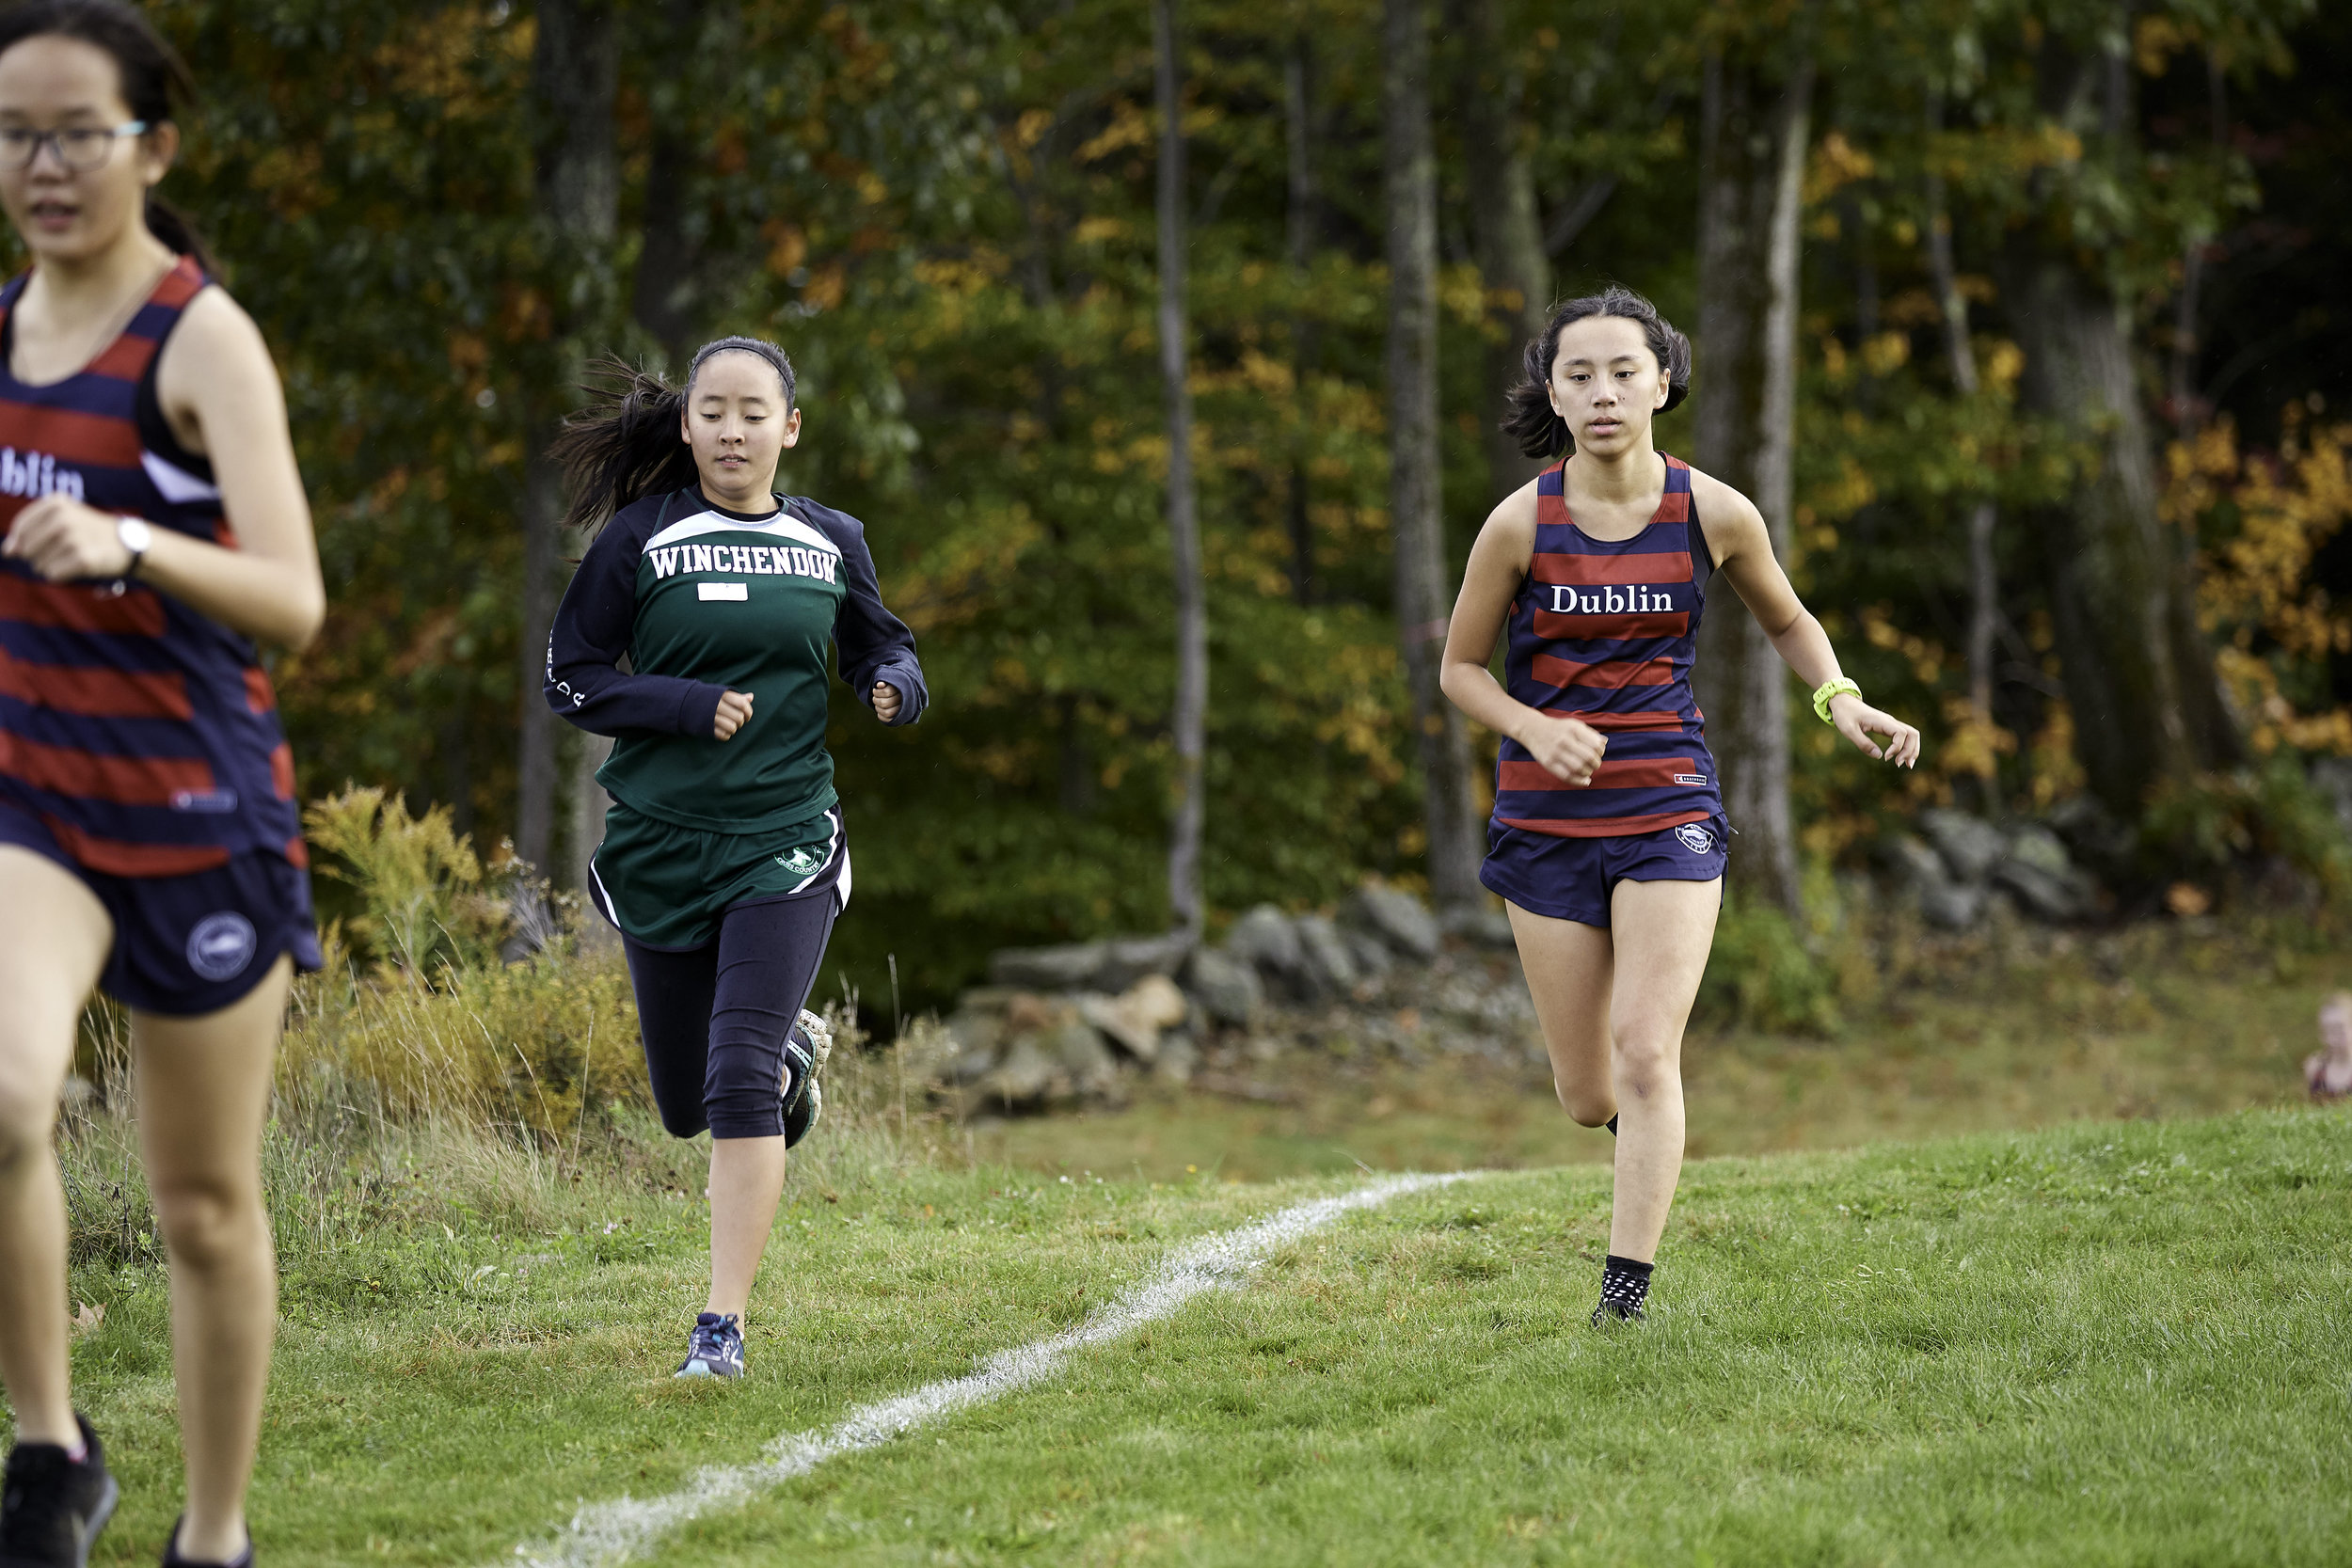 Dublion Invitational - October 12, 2018 - 136556.jpg